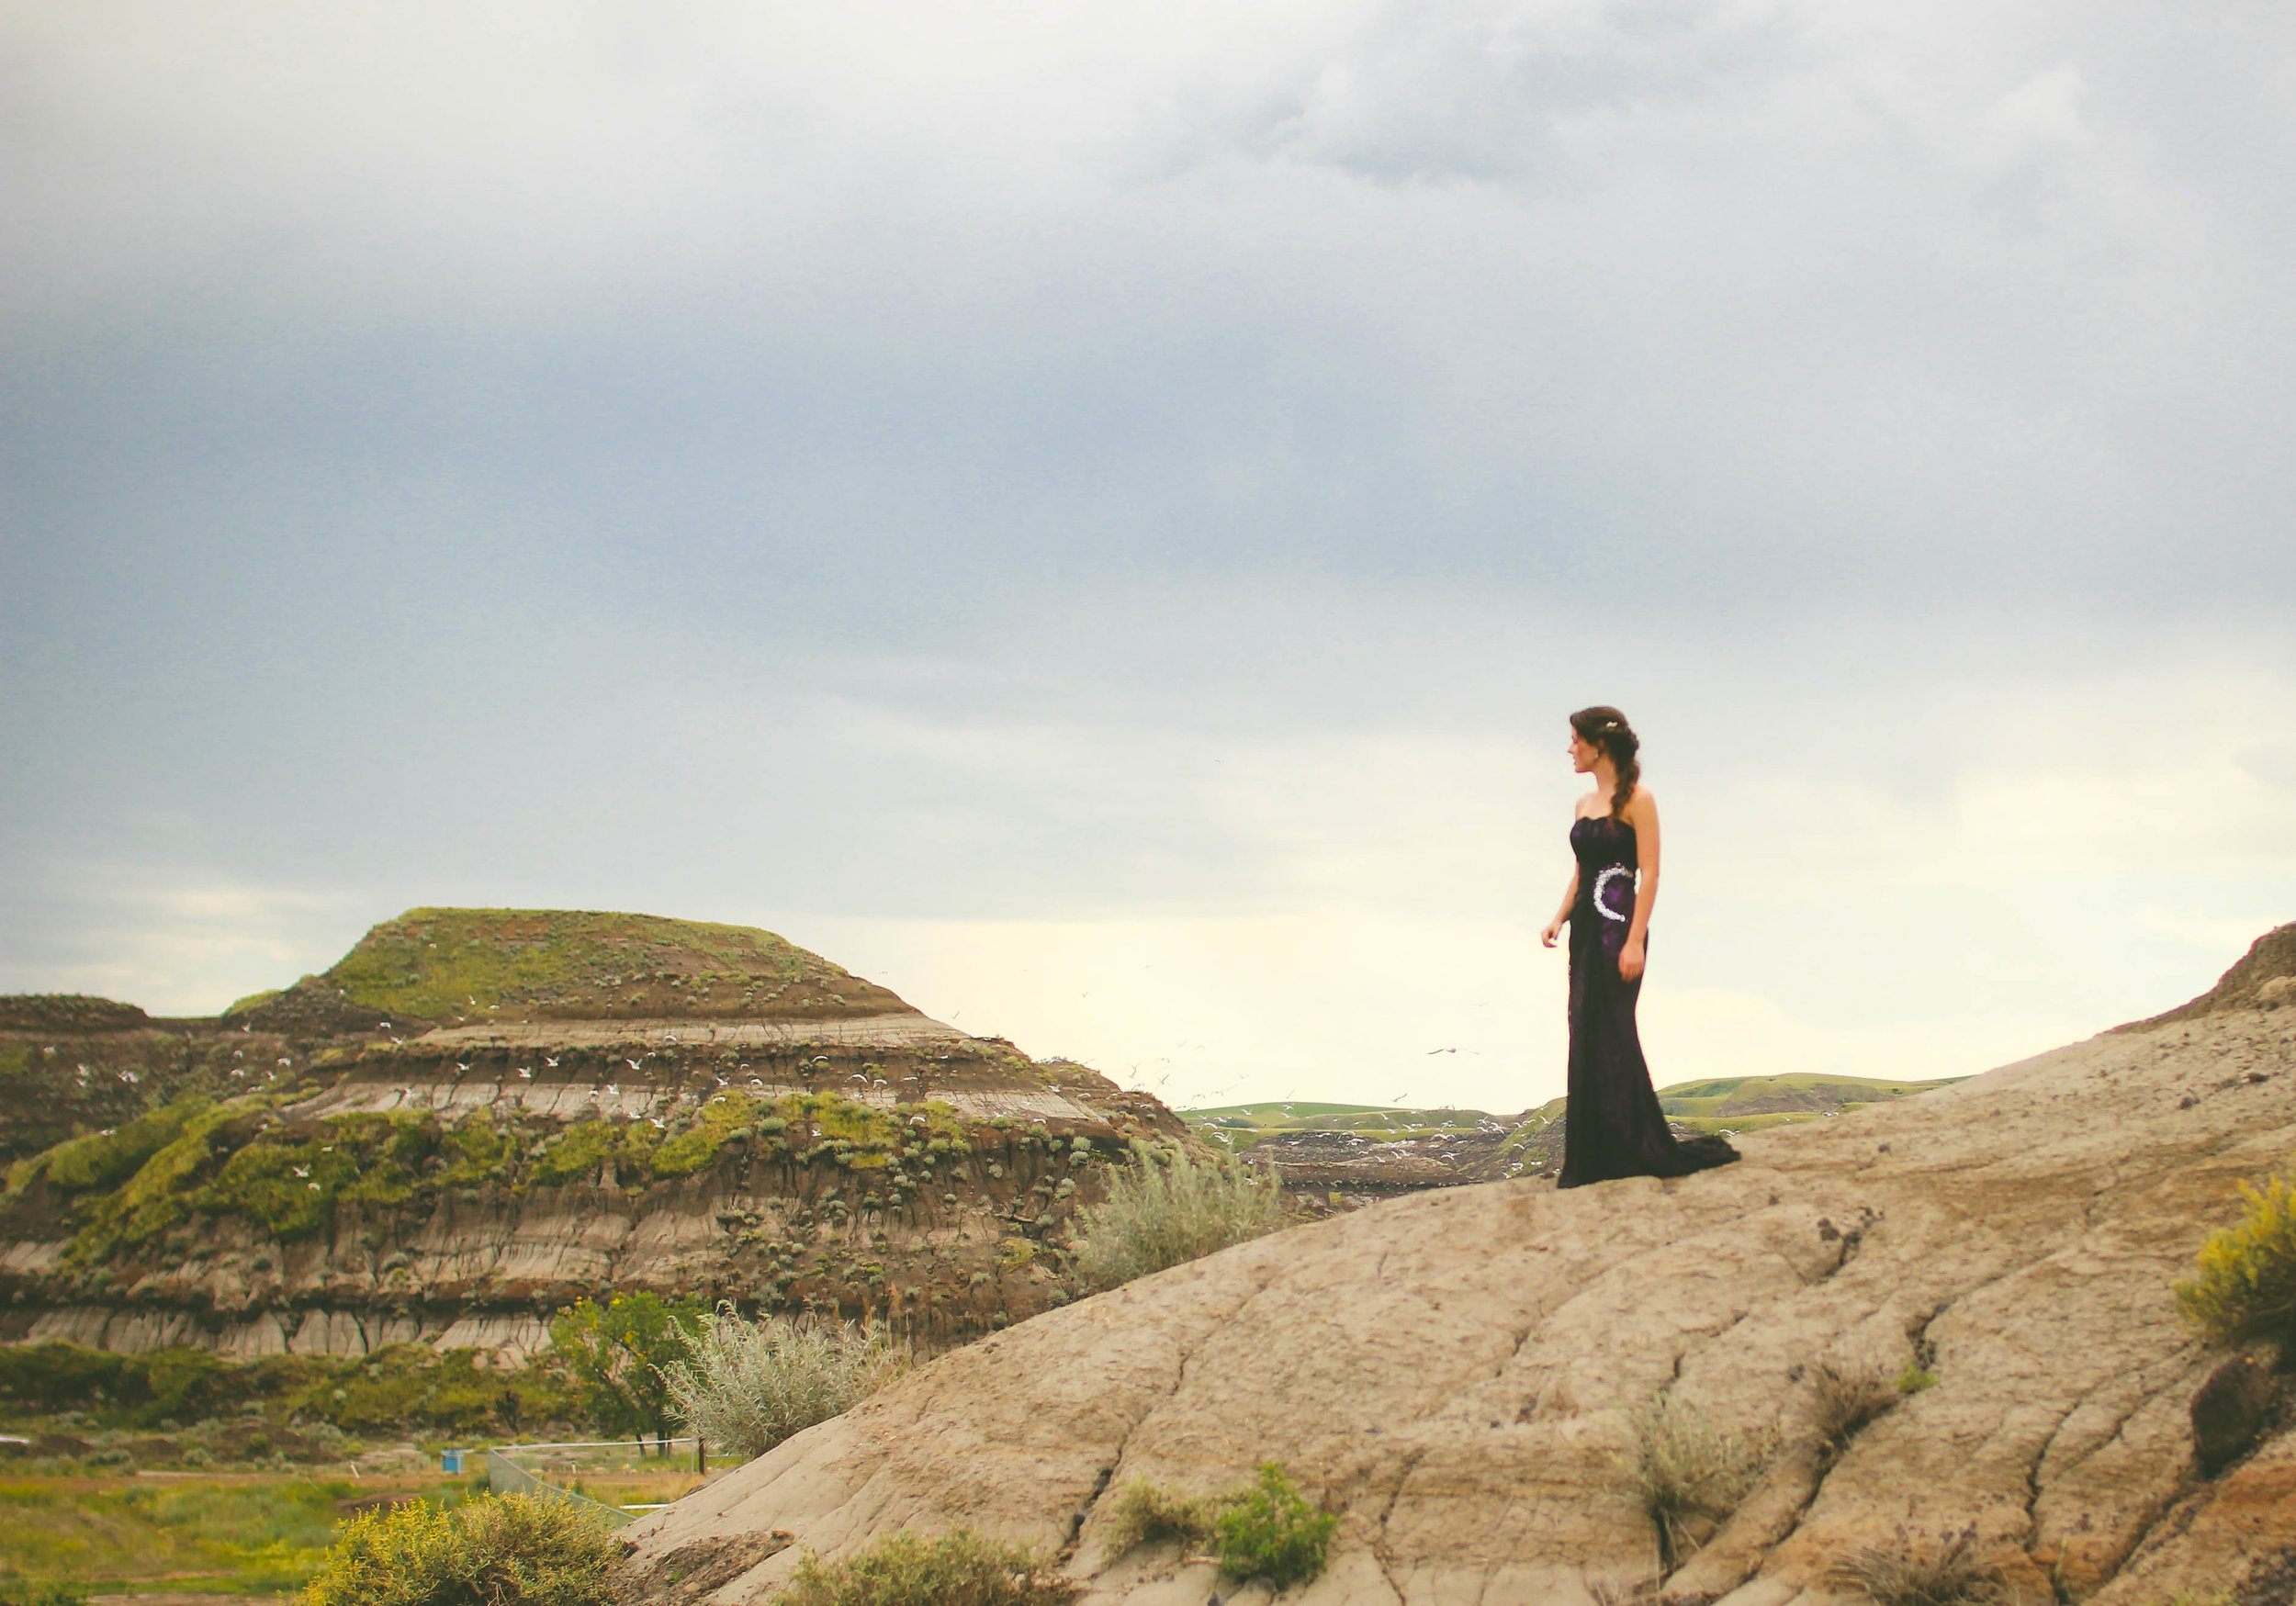 I had the special opportunity to have my grad photos taken in the badlands of Drumheller- a beautiful desert canyon just a quick drive away from my town.